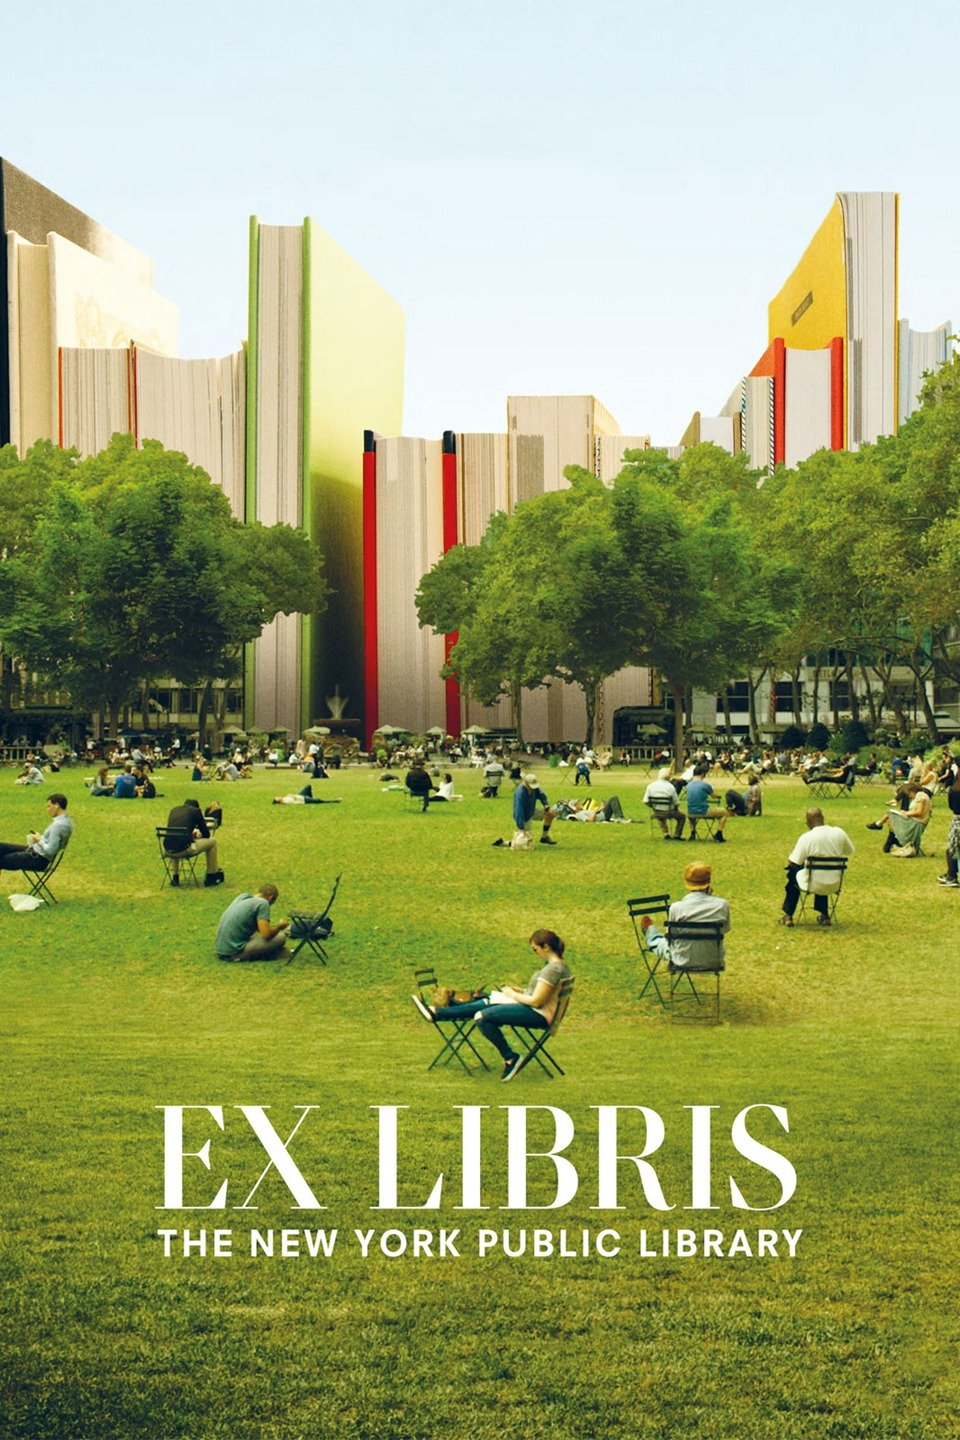 A poster for the movie Ex Libris shows people sitting in an urban park and the buildings are made to look like books.